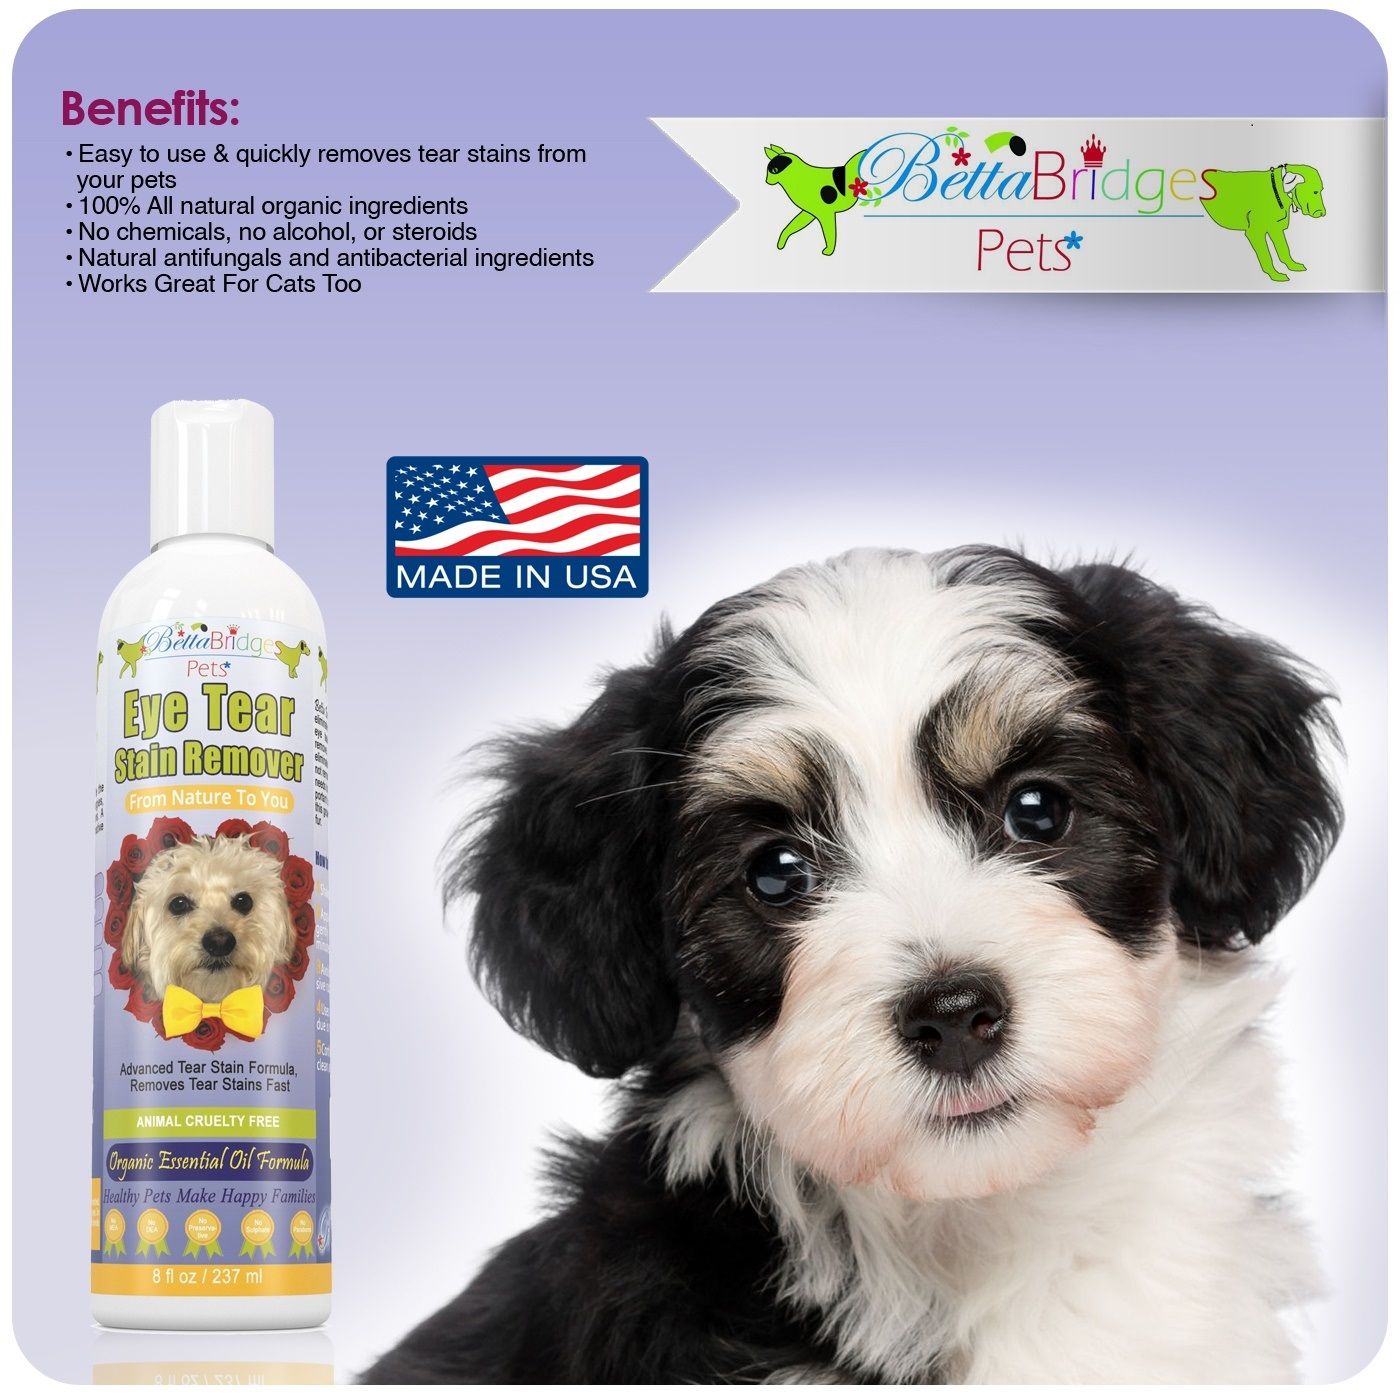 BettaBridges Pets Natural Tear Stain Remover